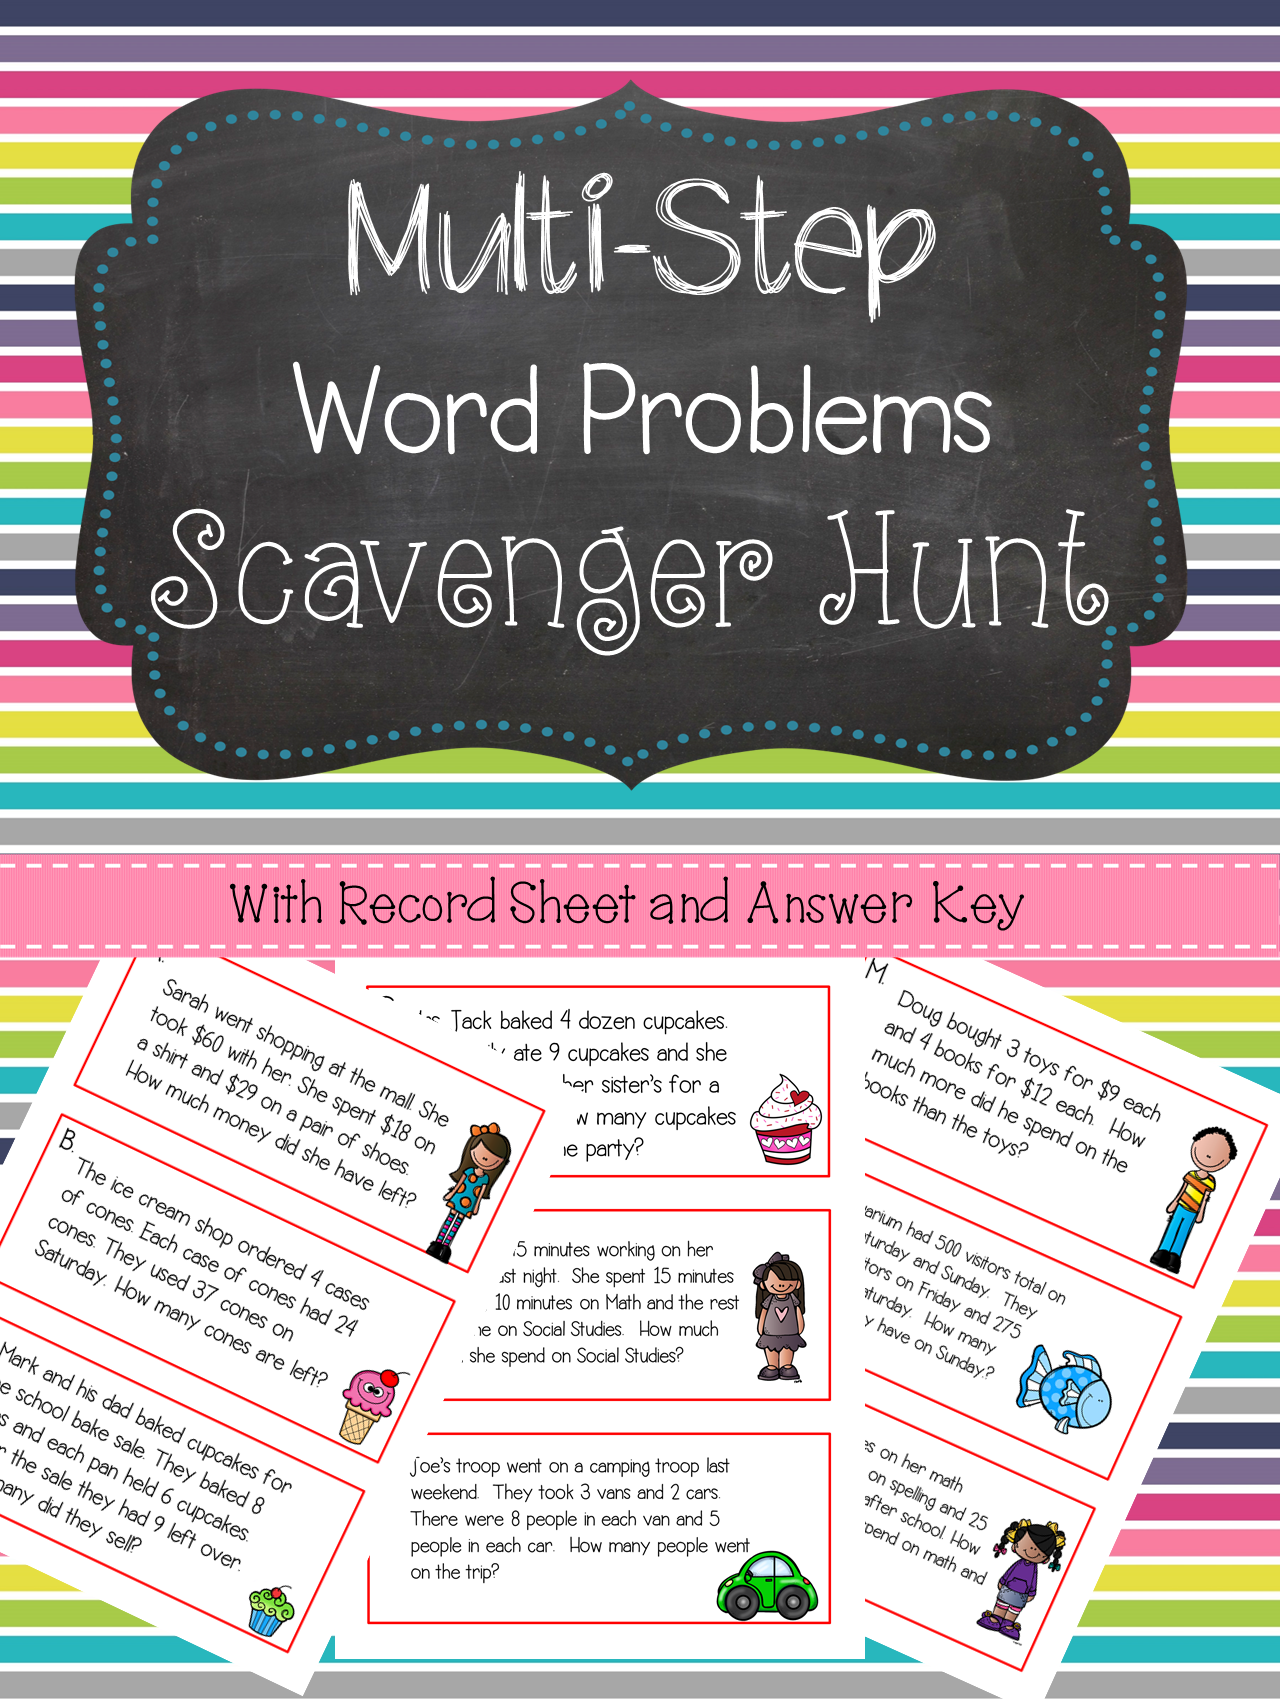 Multi Step Word Problems Scavenger Hunt